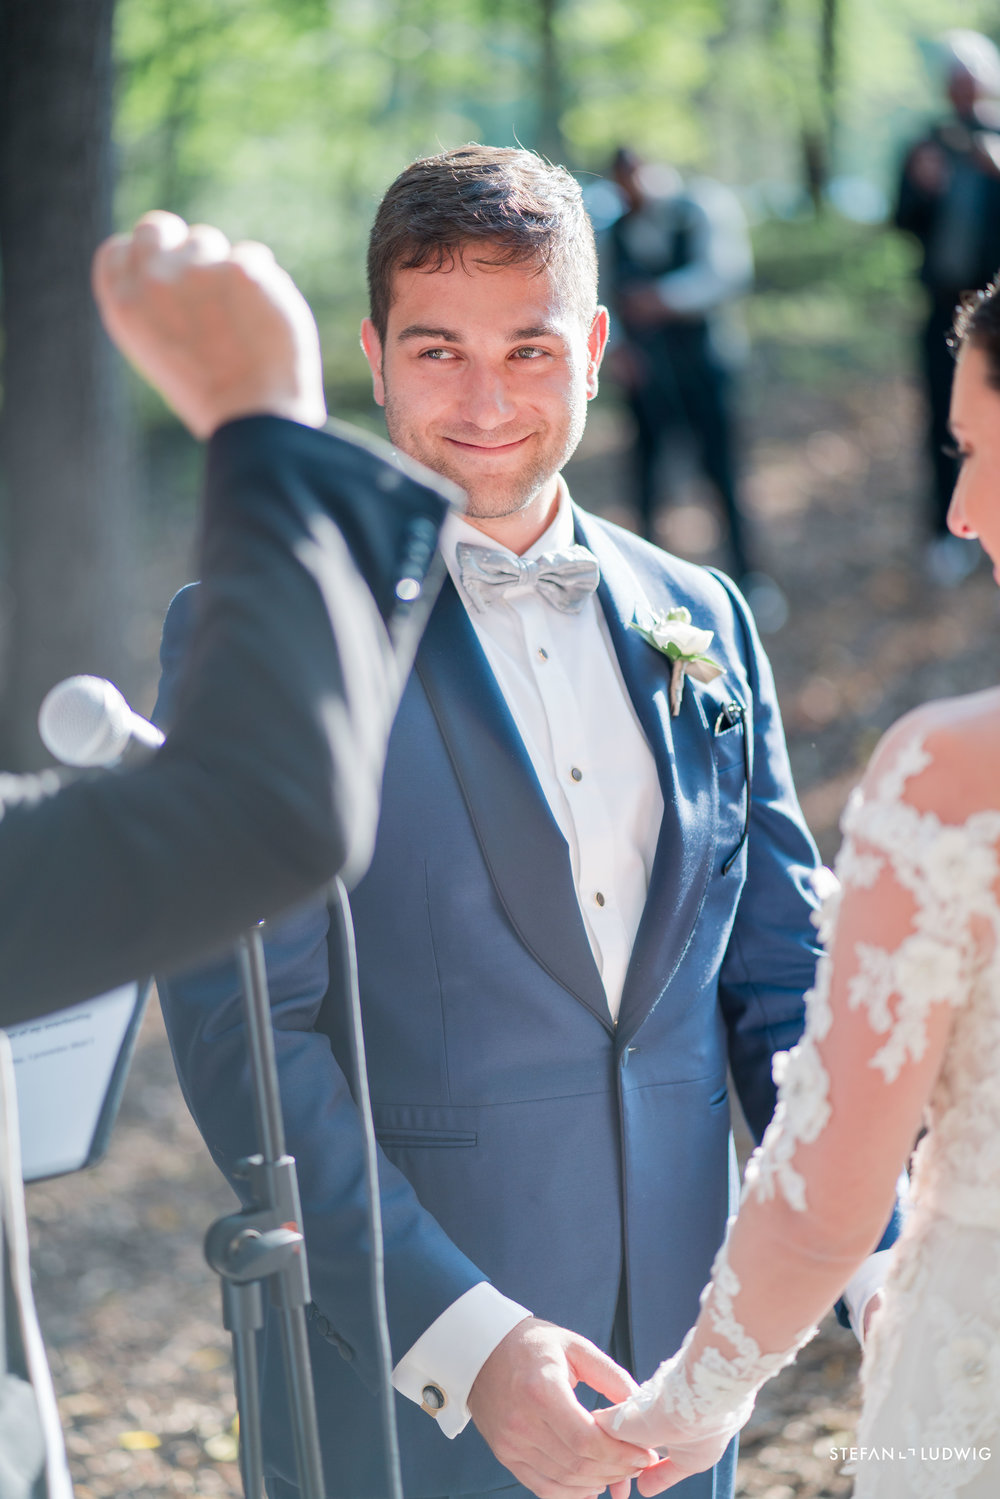 Heather and Andrew Wedding Photography ay Meadow Ridge Farm in Hudson NY by Stefan Ludwig Photography-85.jpg